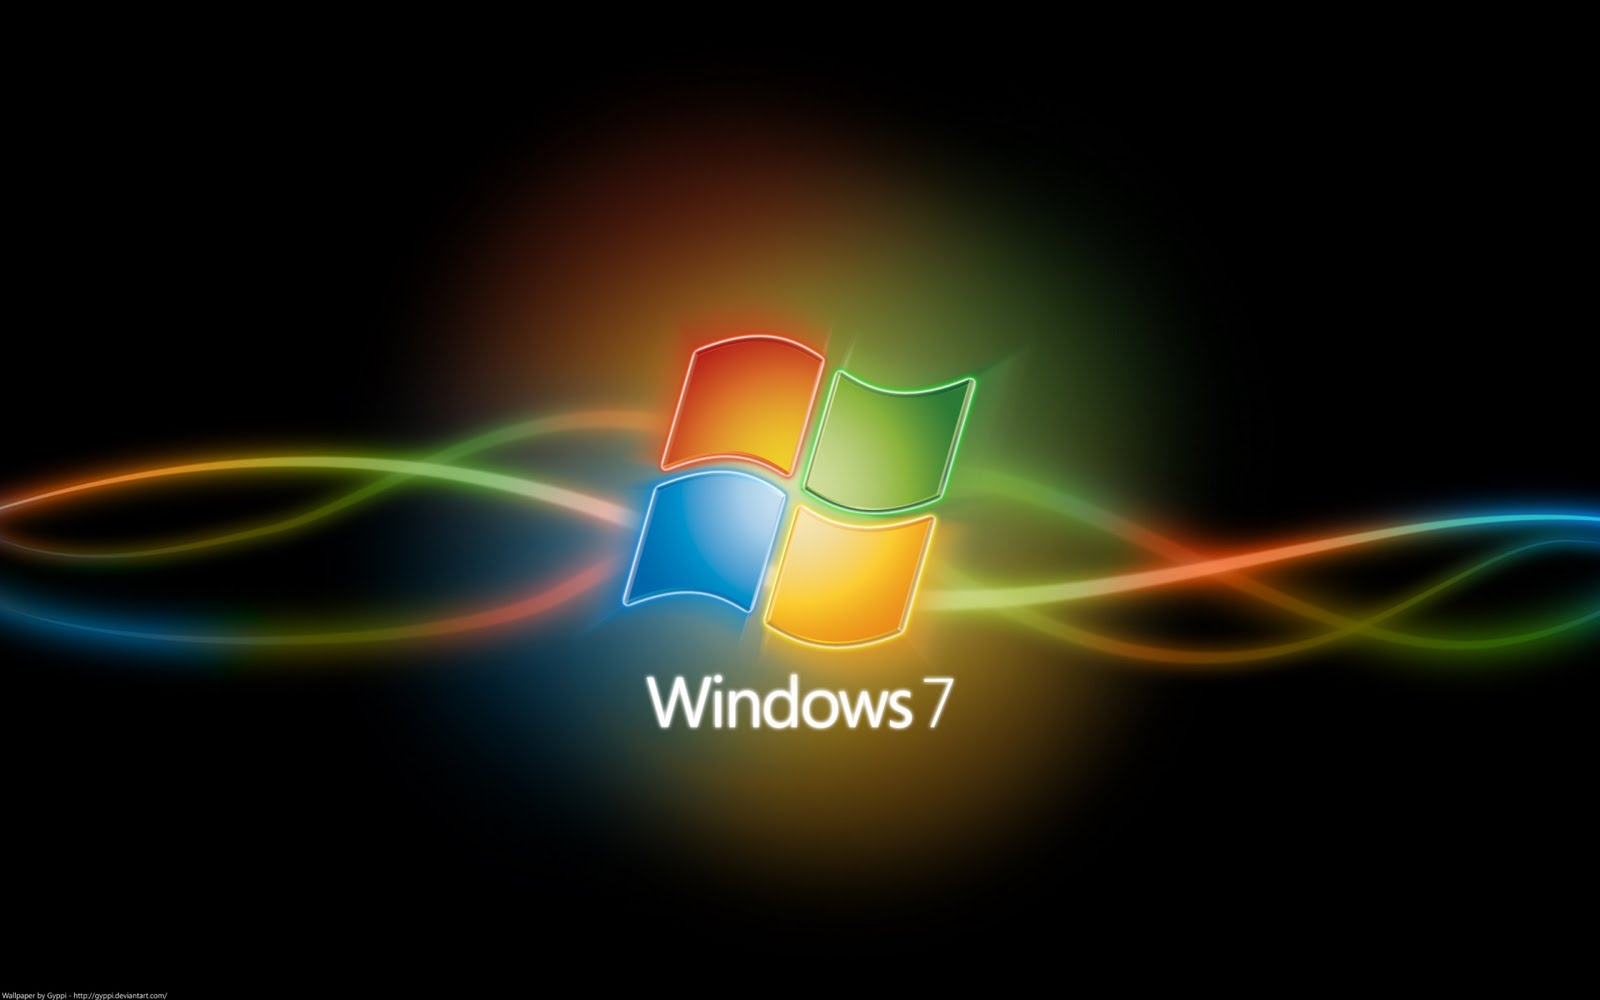 windows7 desktop wallpaper free download windows 7 3d